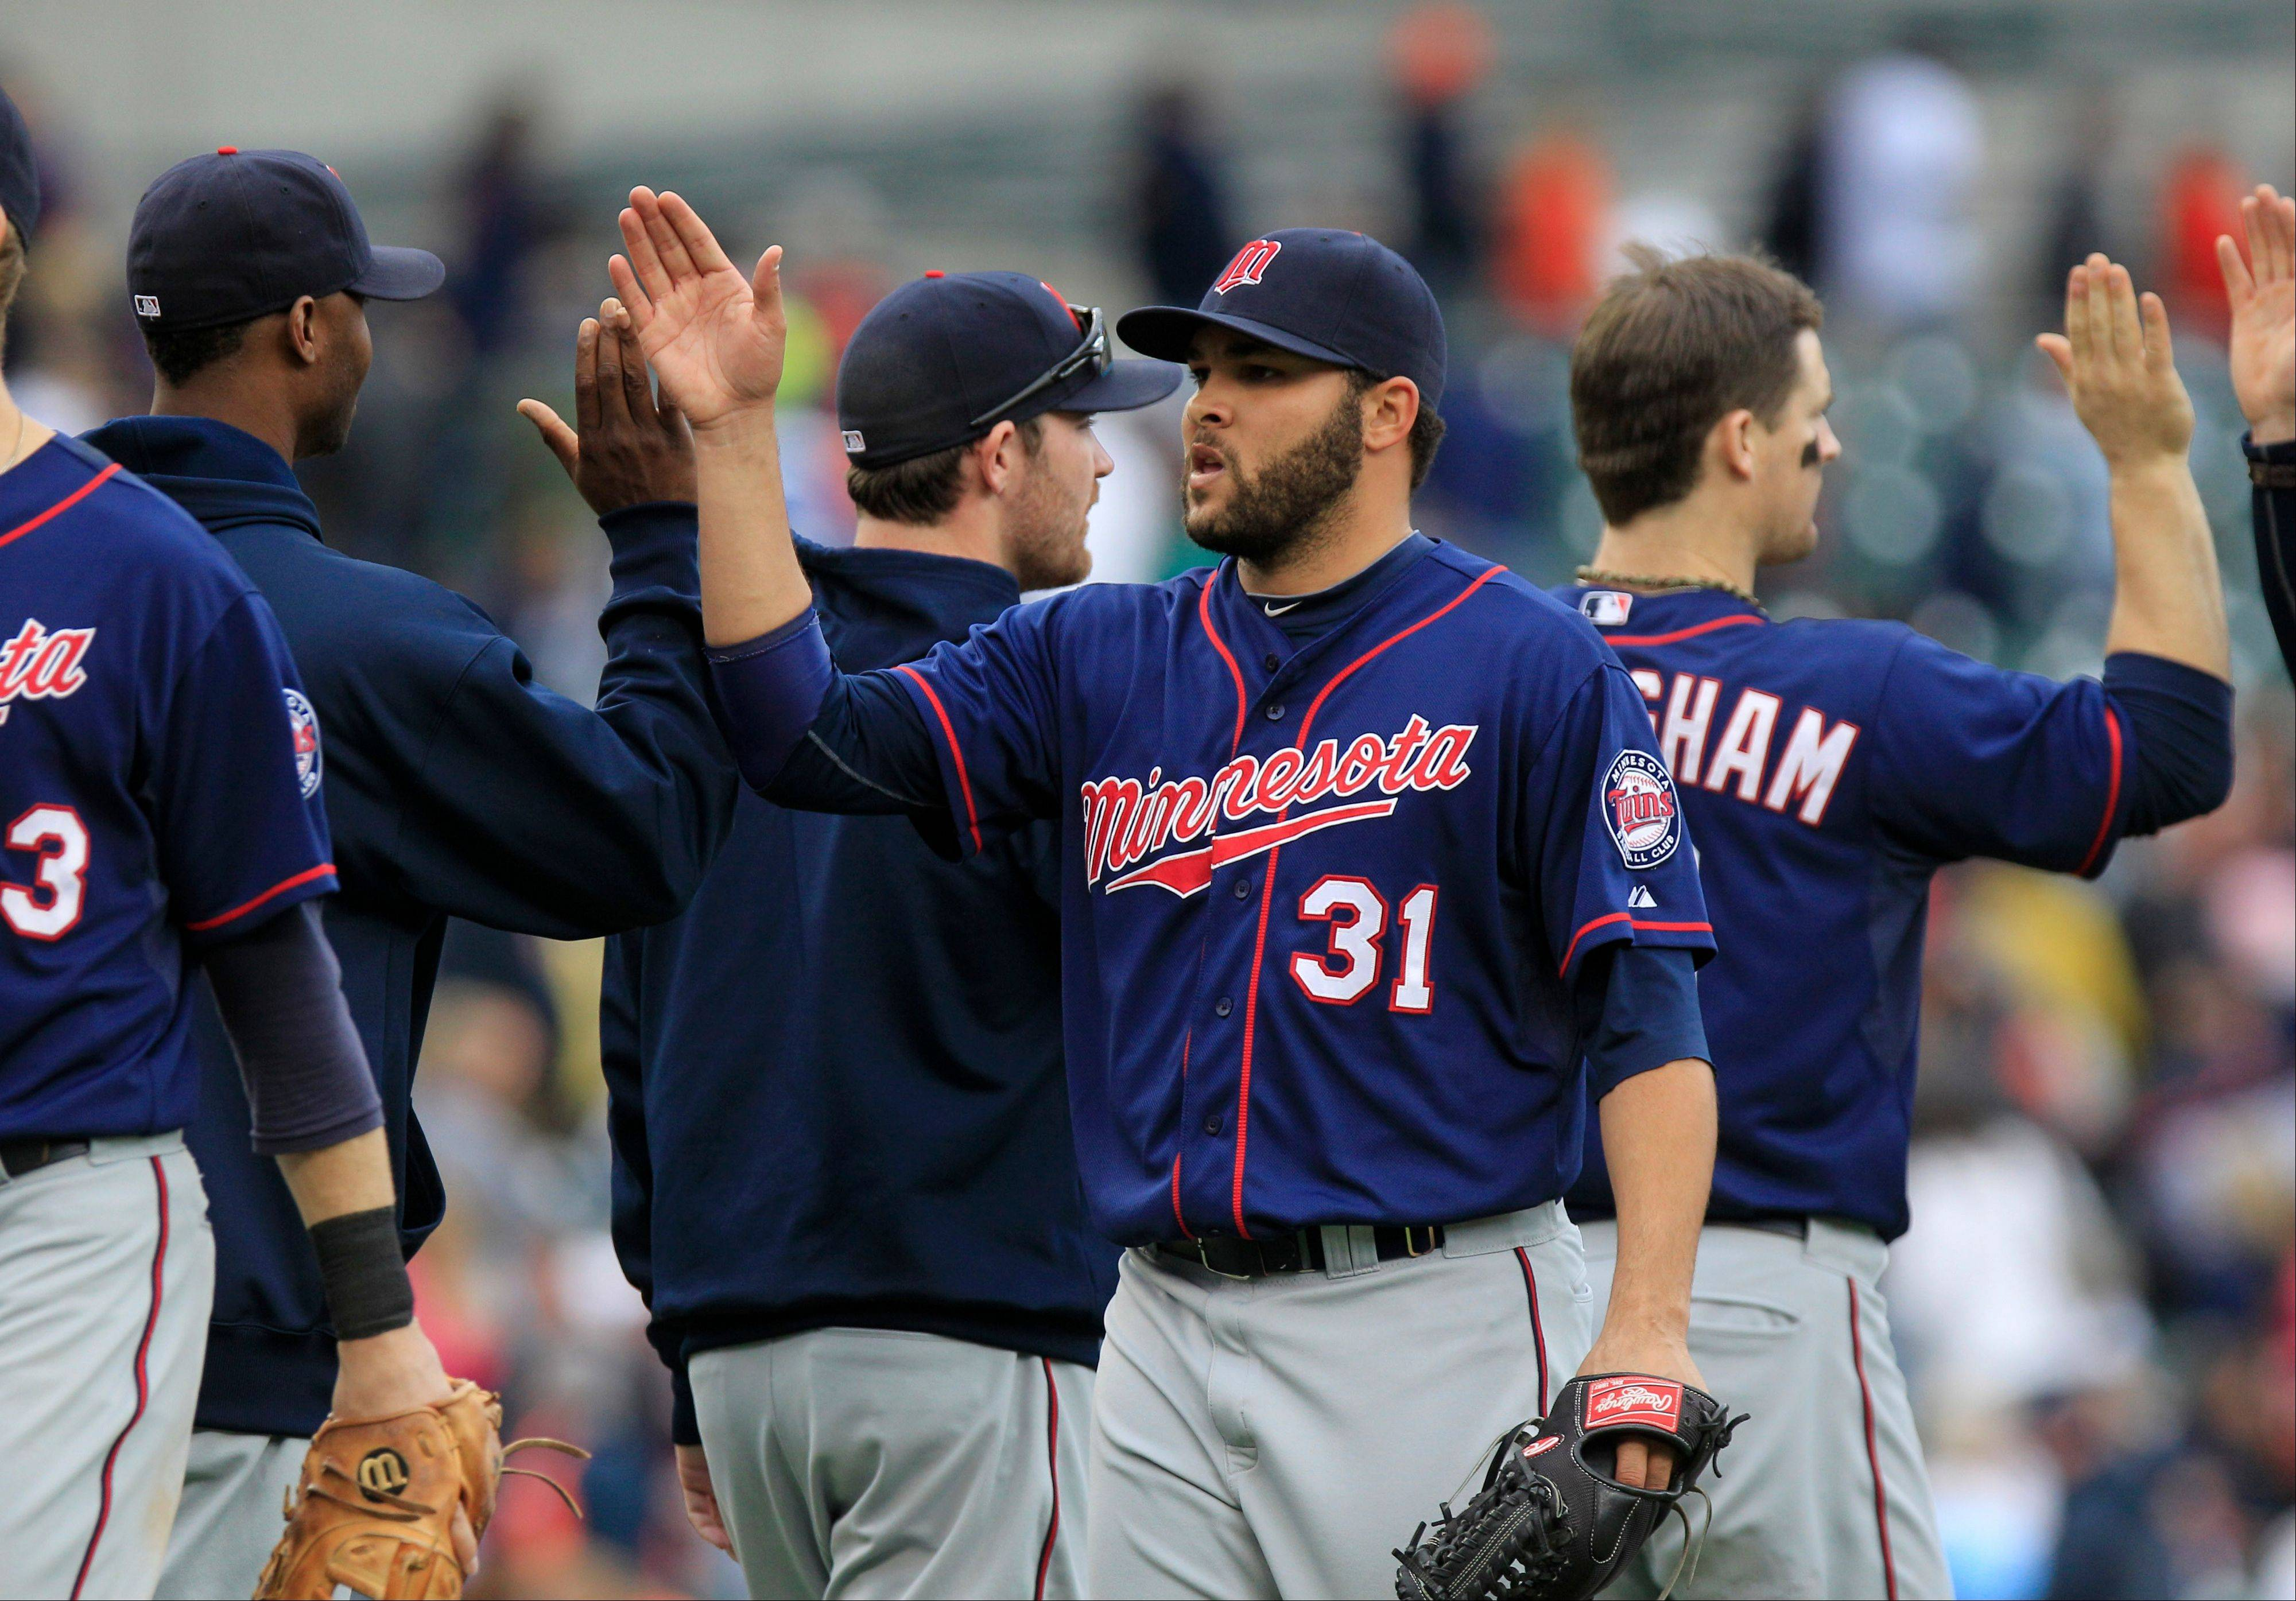 Twins relief pitcher Alex Burnett (31) high-fives his teammates after their 10-4 win over the Detroit Tigers in the first game of a doubleheader Sunday at Comerica Park.